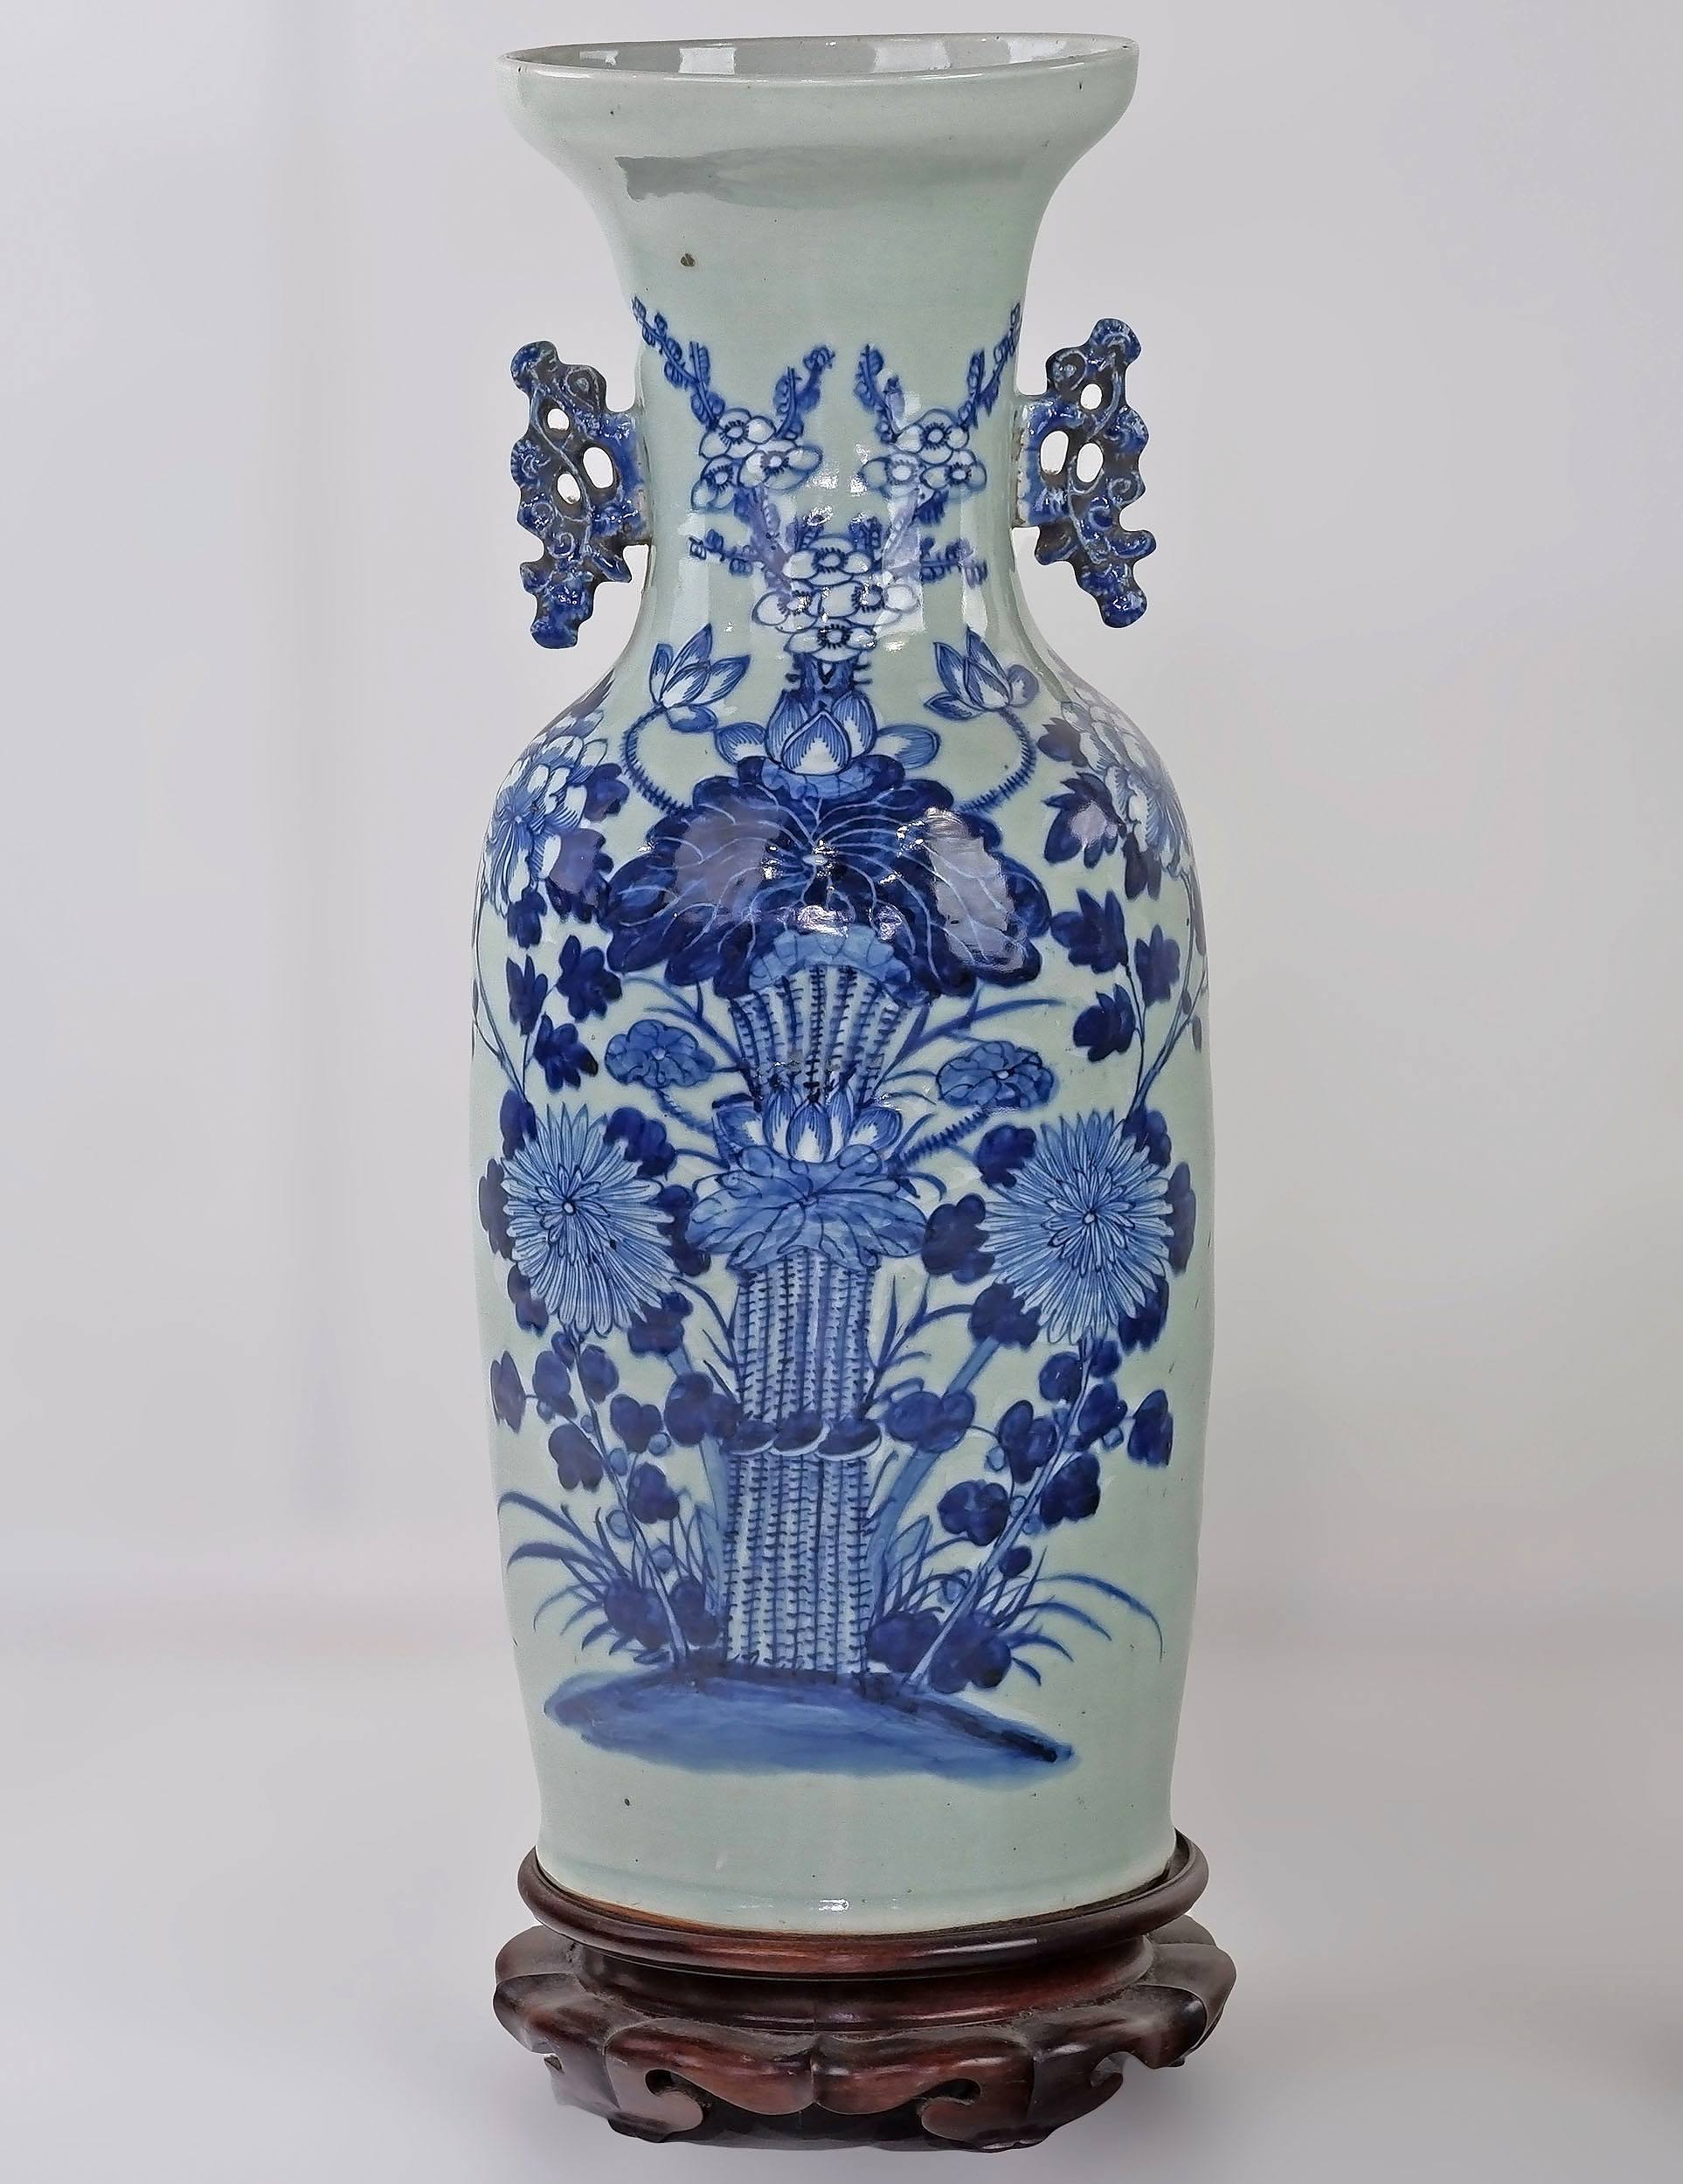 'Large Chinese Celadon Ground and Underglaze Blue and White Vase Decorated with a Flower Bunch, Late 19th/Early 20th Century'